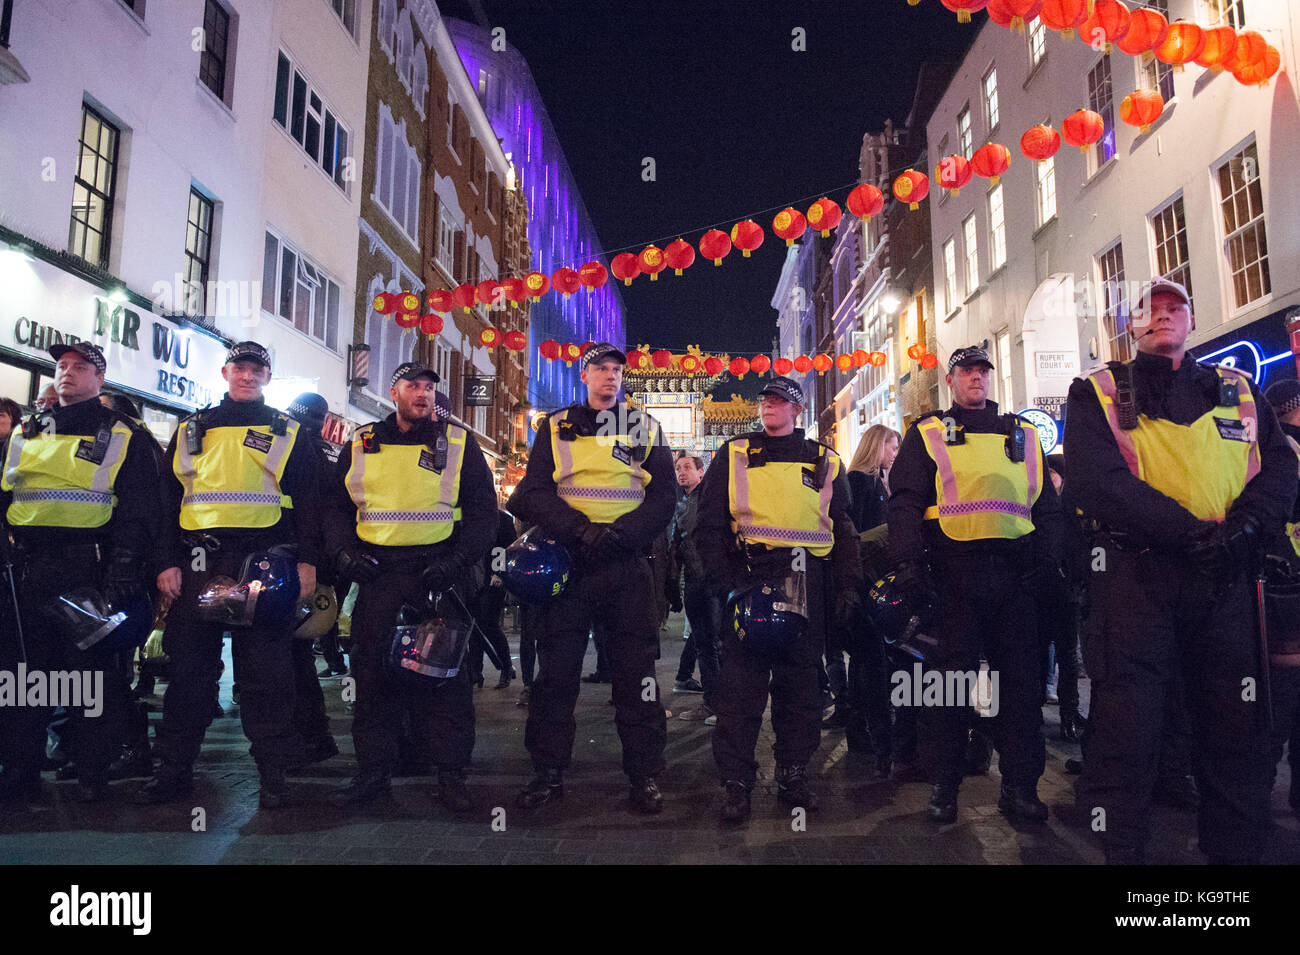 London, United Kingdom. 05th Nov, 2017. Million Mask March 2017 takes place in central London. Police forma cordon Stock Photo